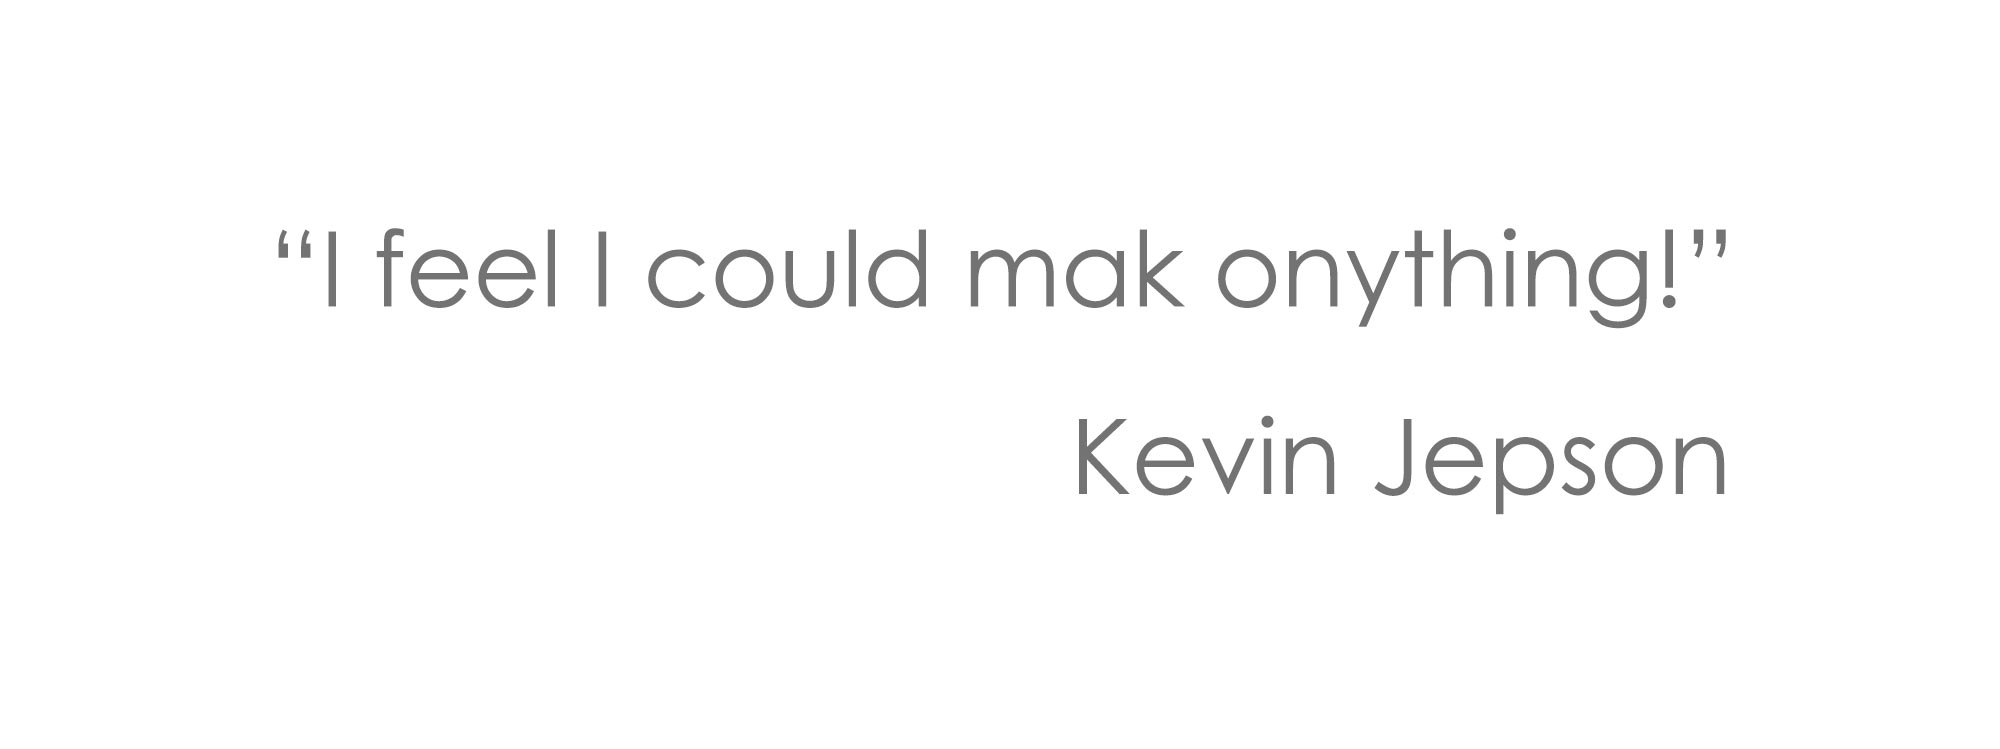 kevin-Jepson-quote-25pt-text.jpg